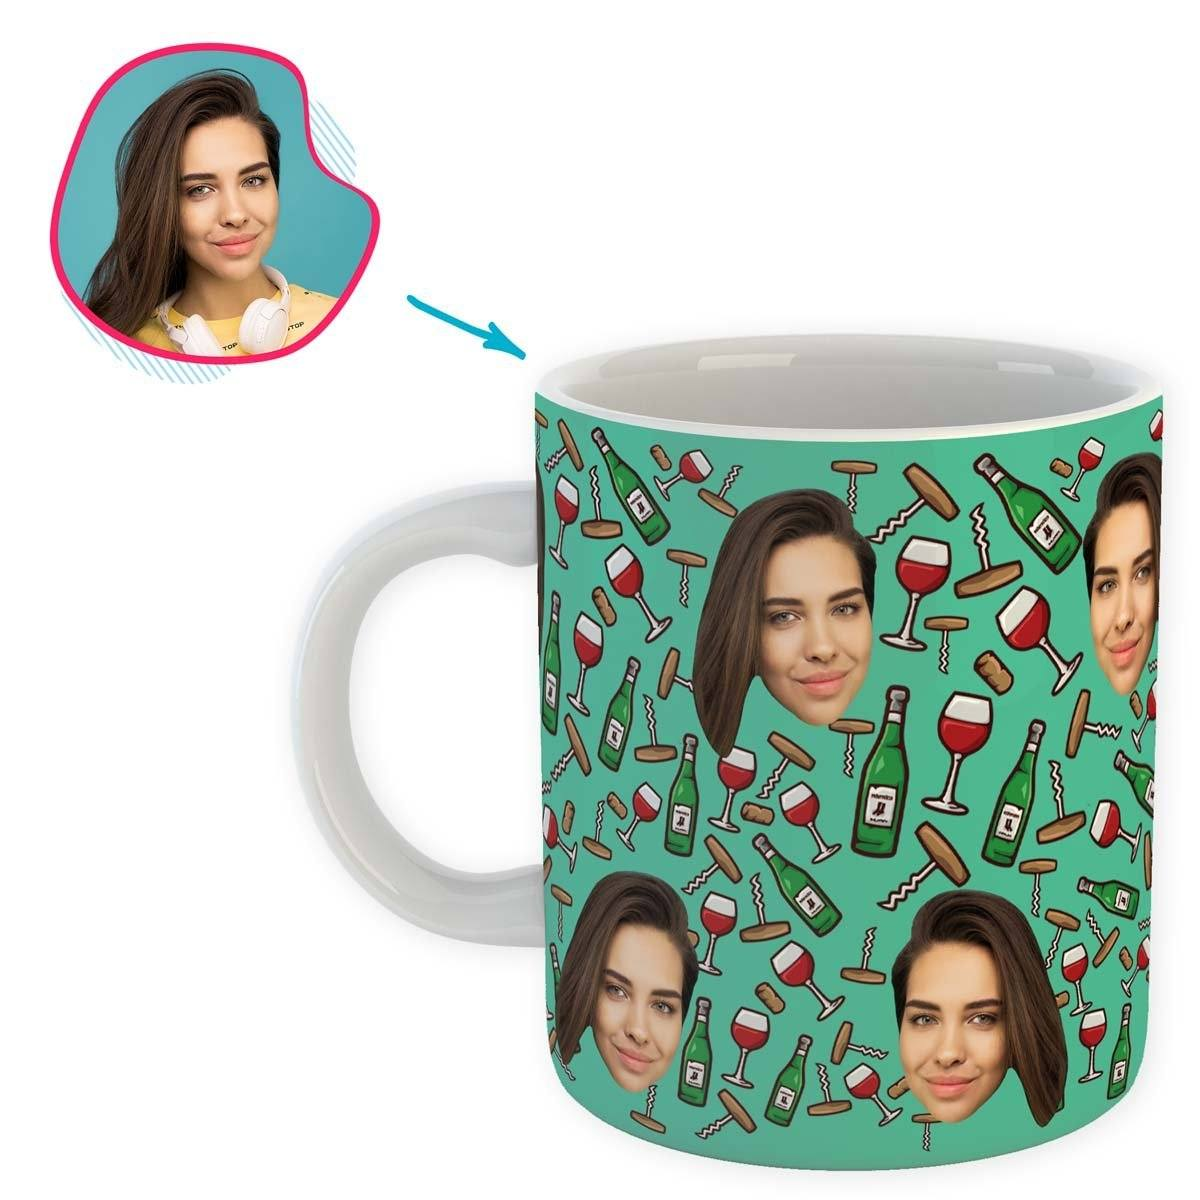 mint Wine mug personalized with photo of face printed on it